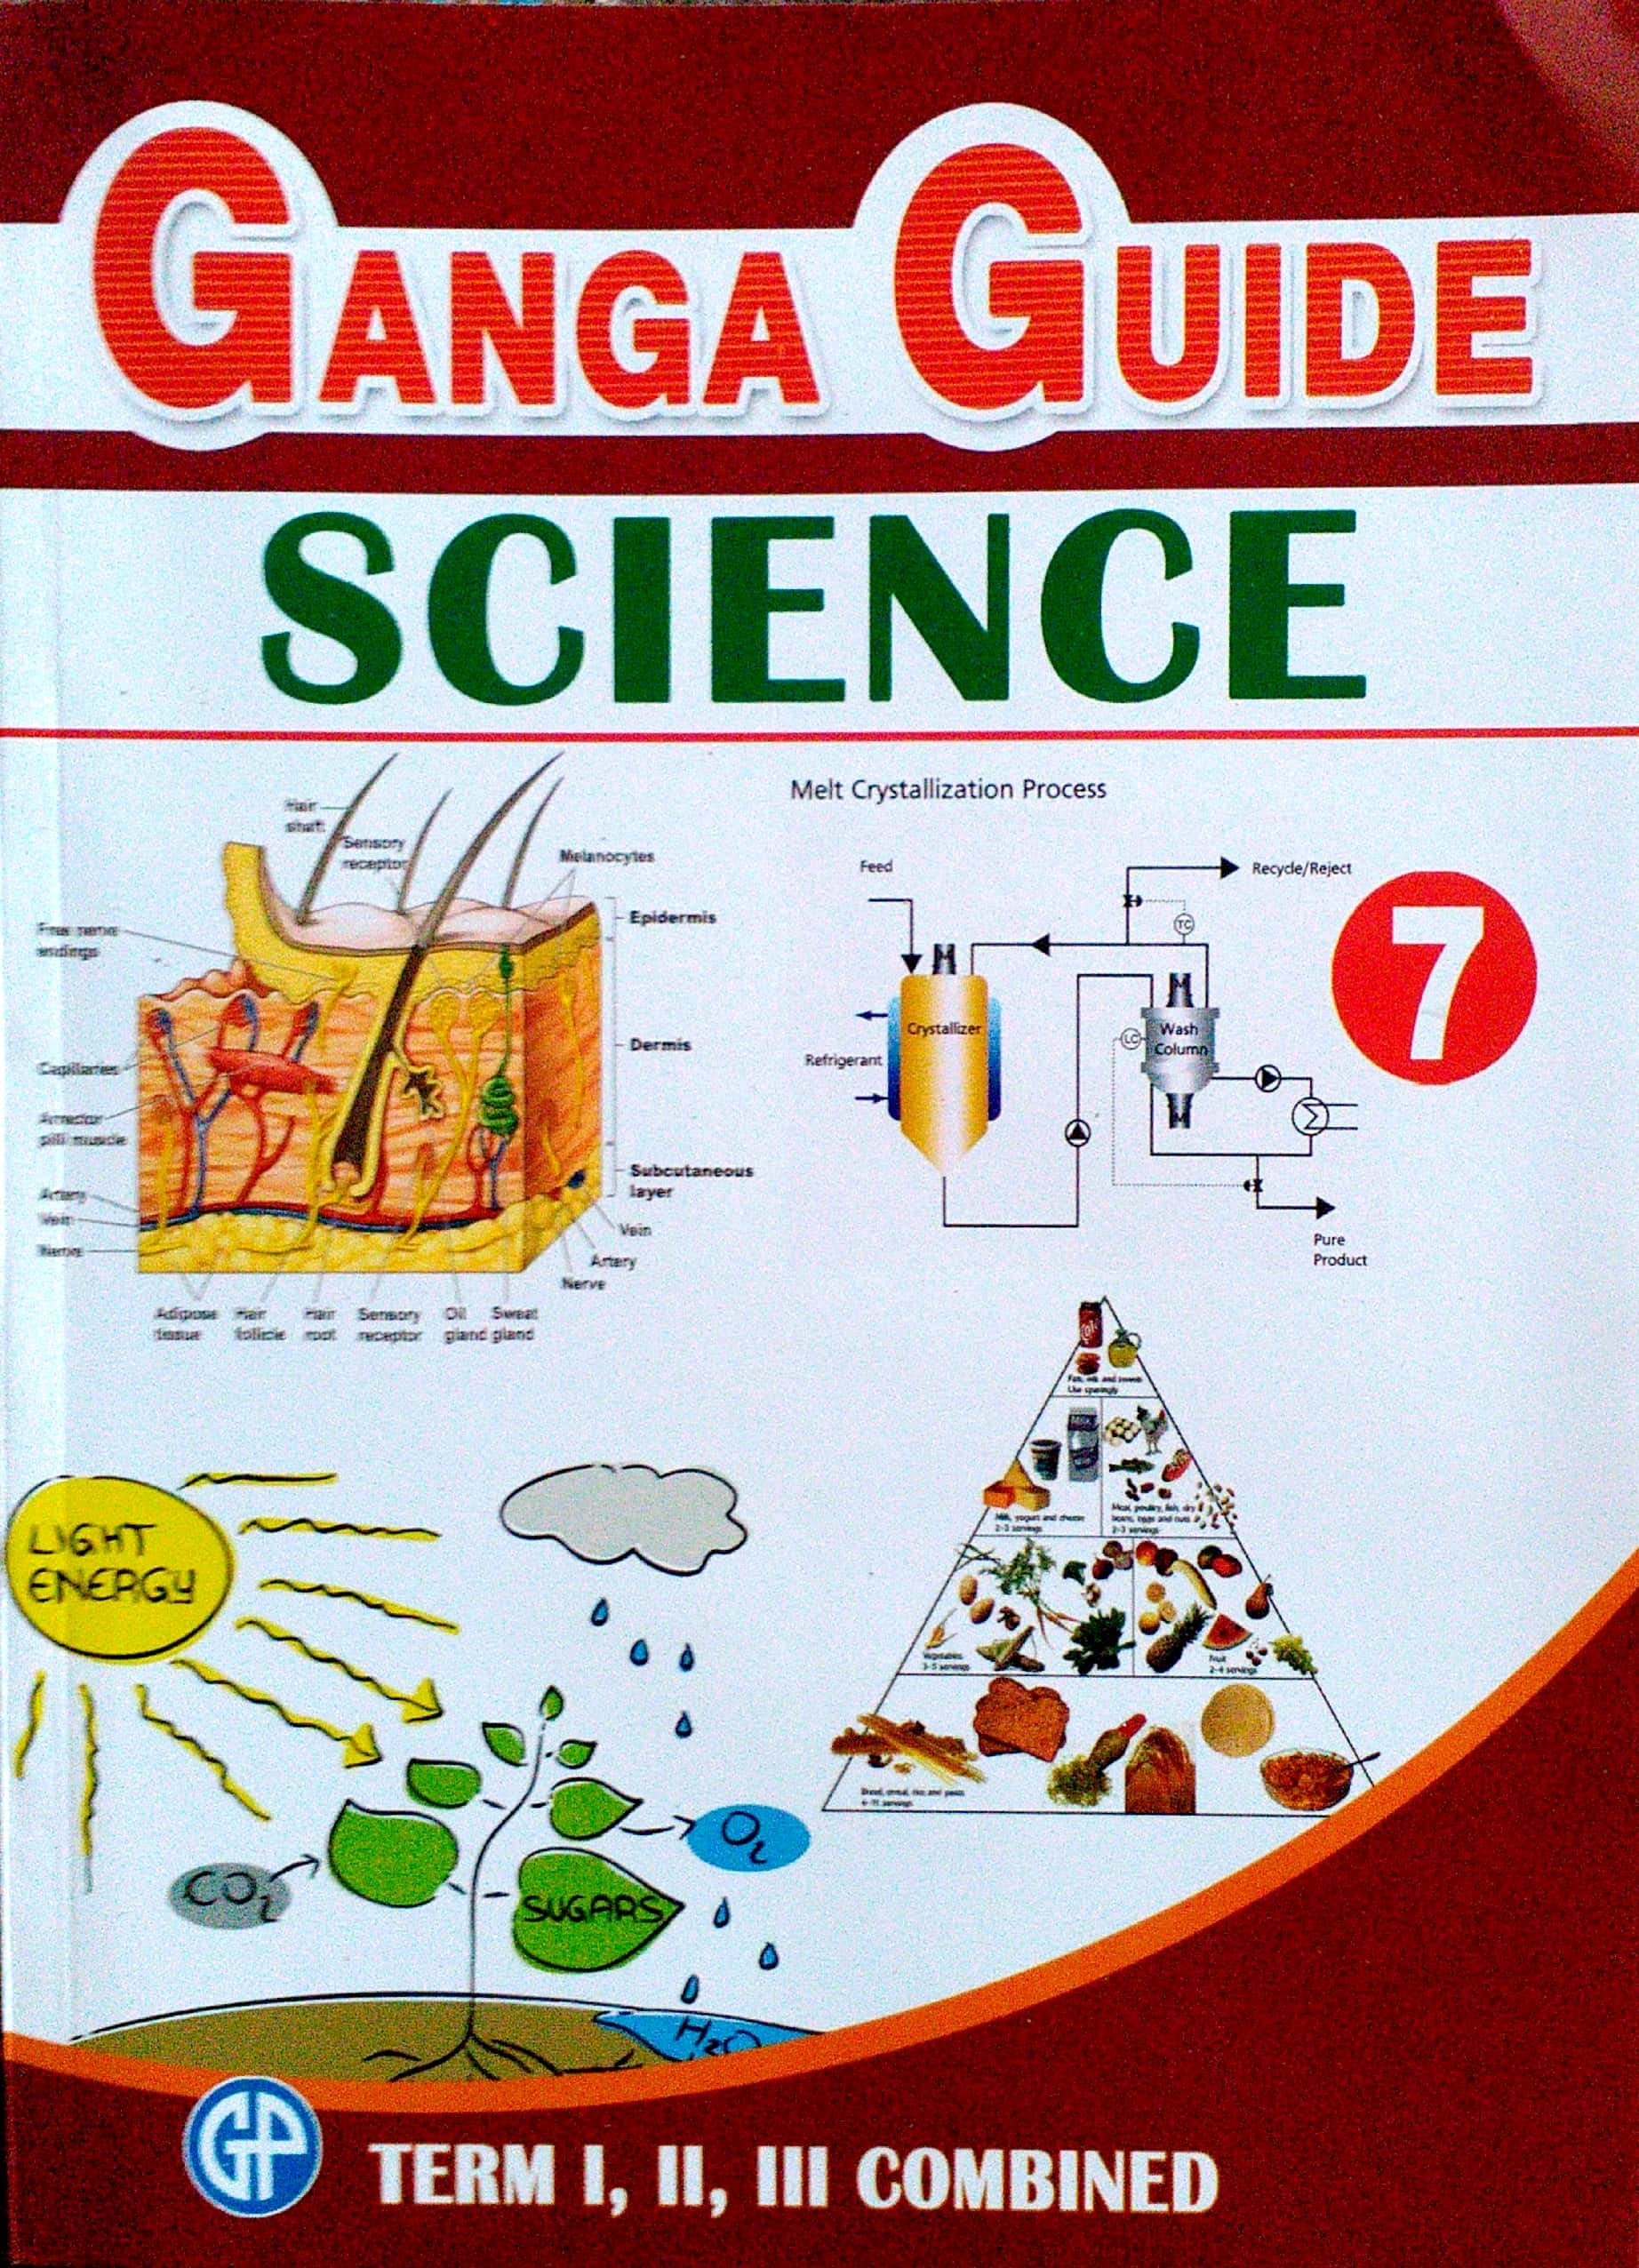 routemybook buy 7th ganga science full term guide biology rh routemybook com